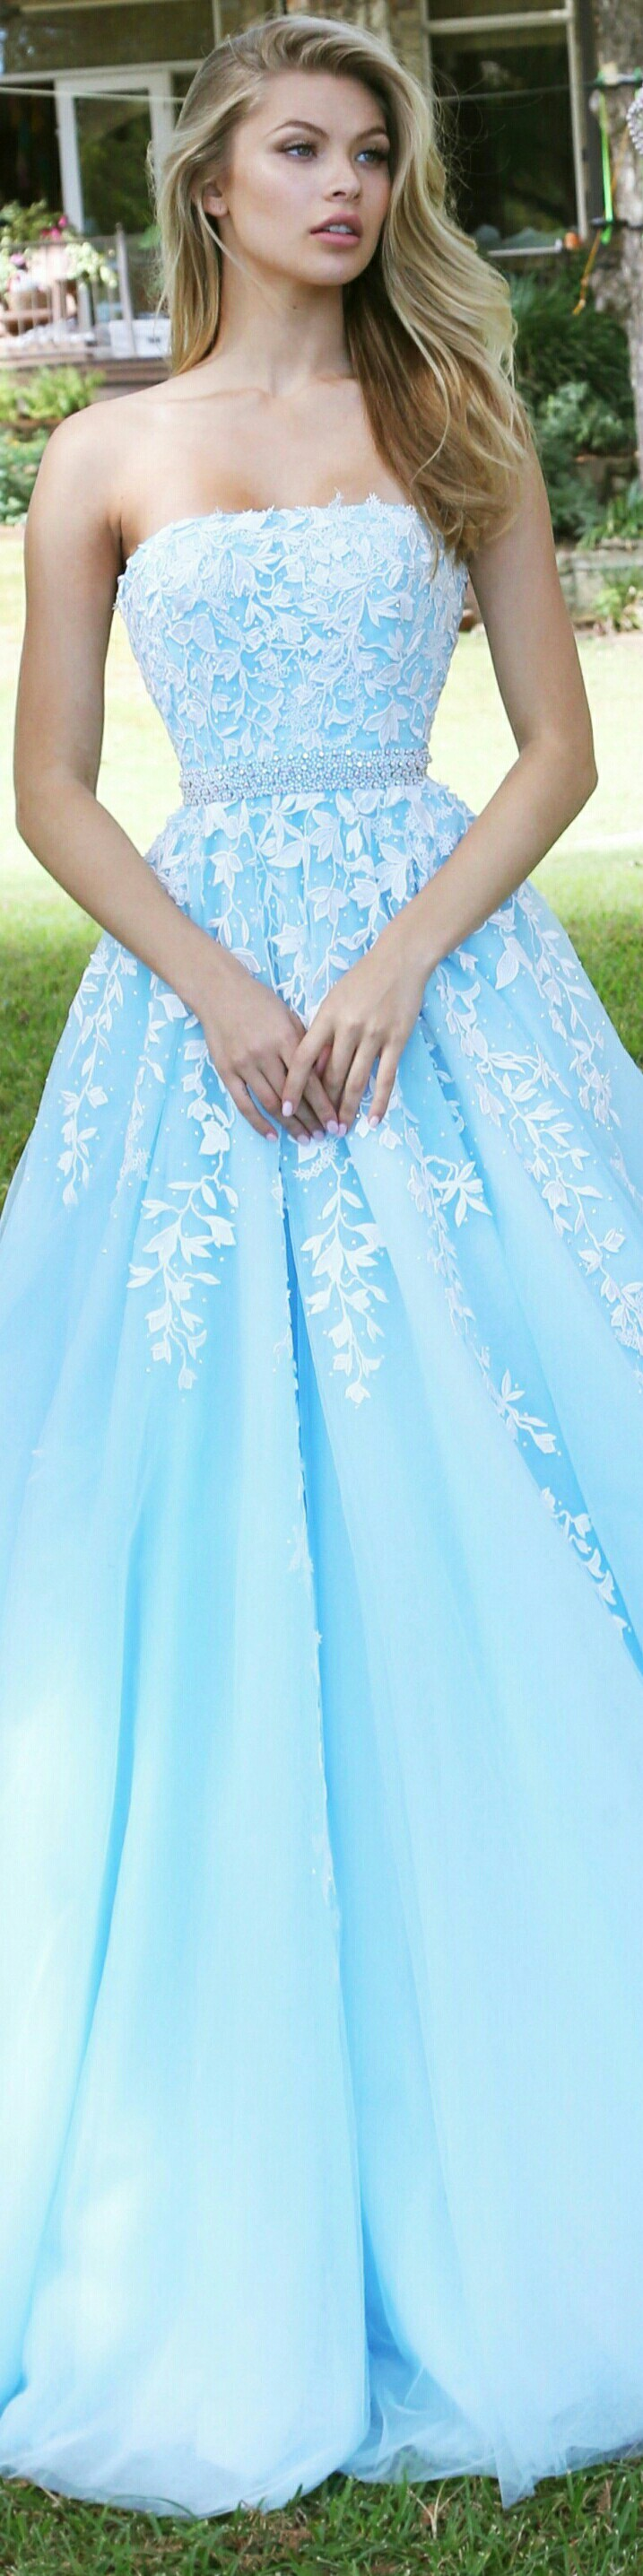 SHERRI HILL In Baby Blue w Beaded Waist Belt and White Petals on